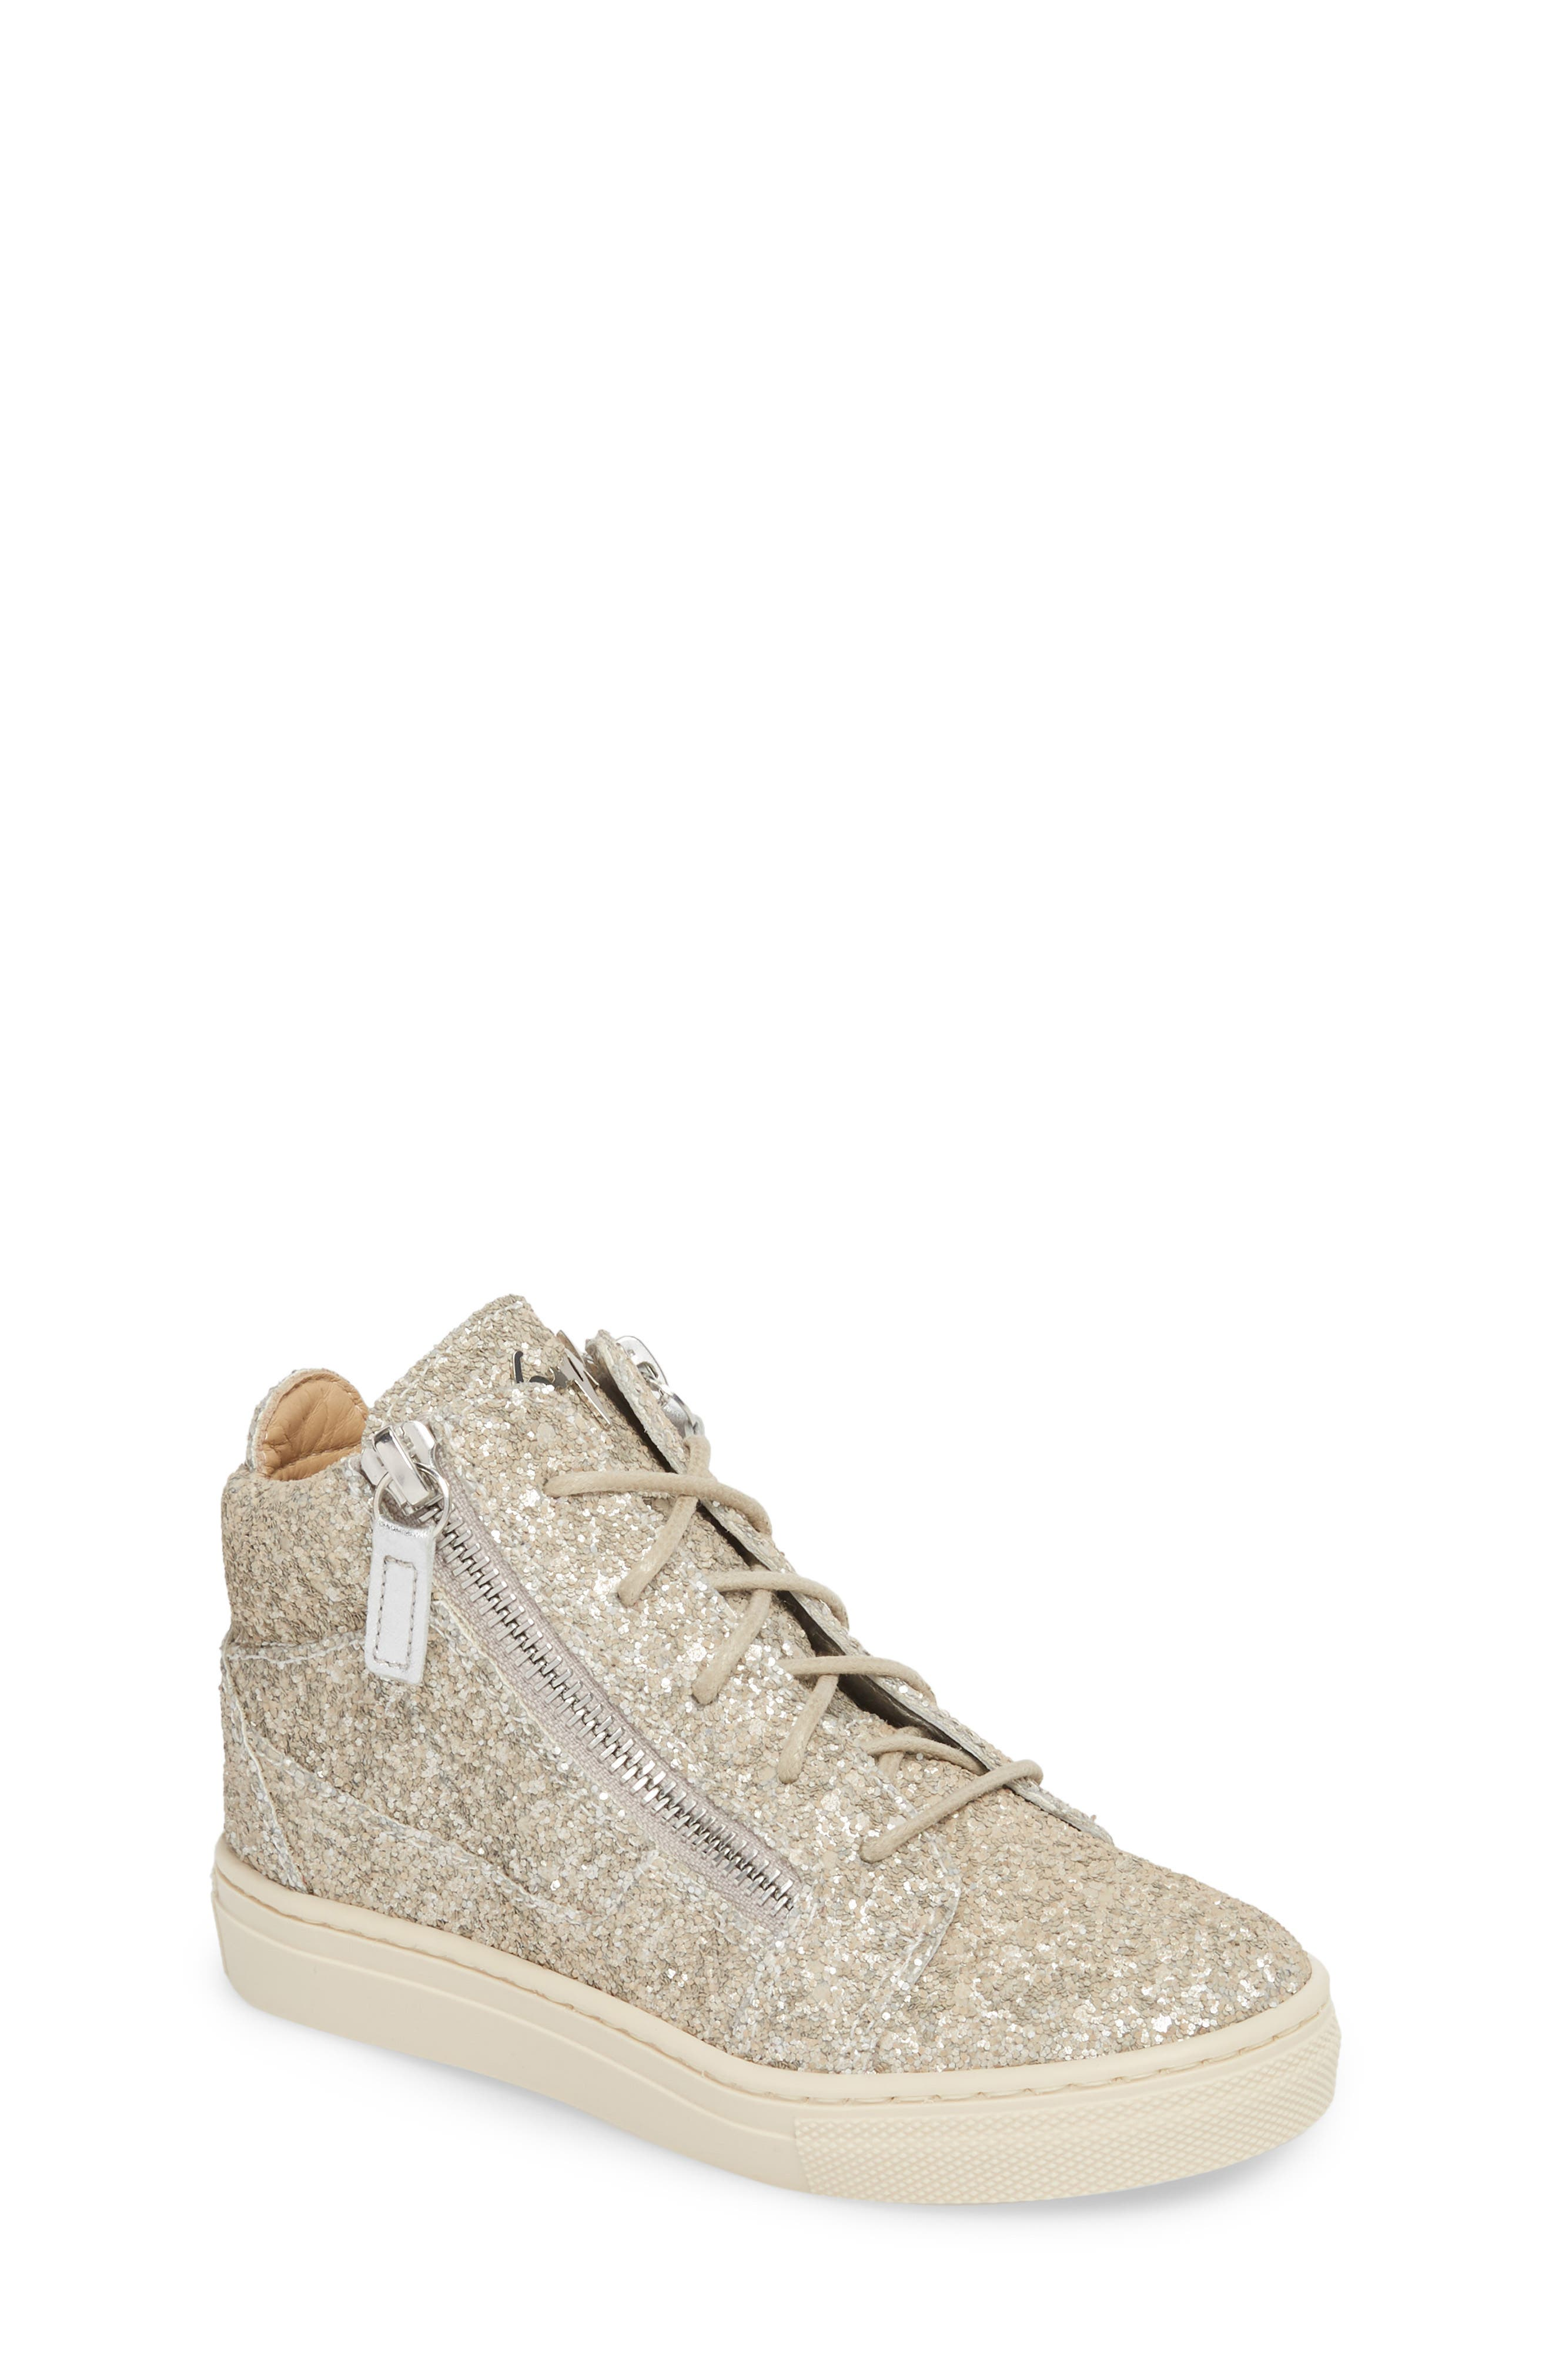 Natalie High Top Sneaker,                         Main,                         color, Silver Glitter